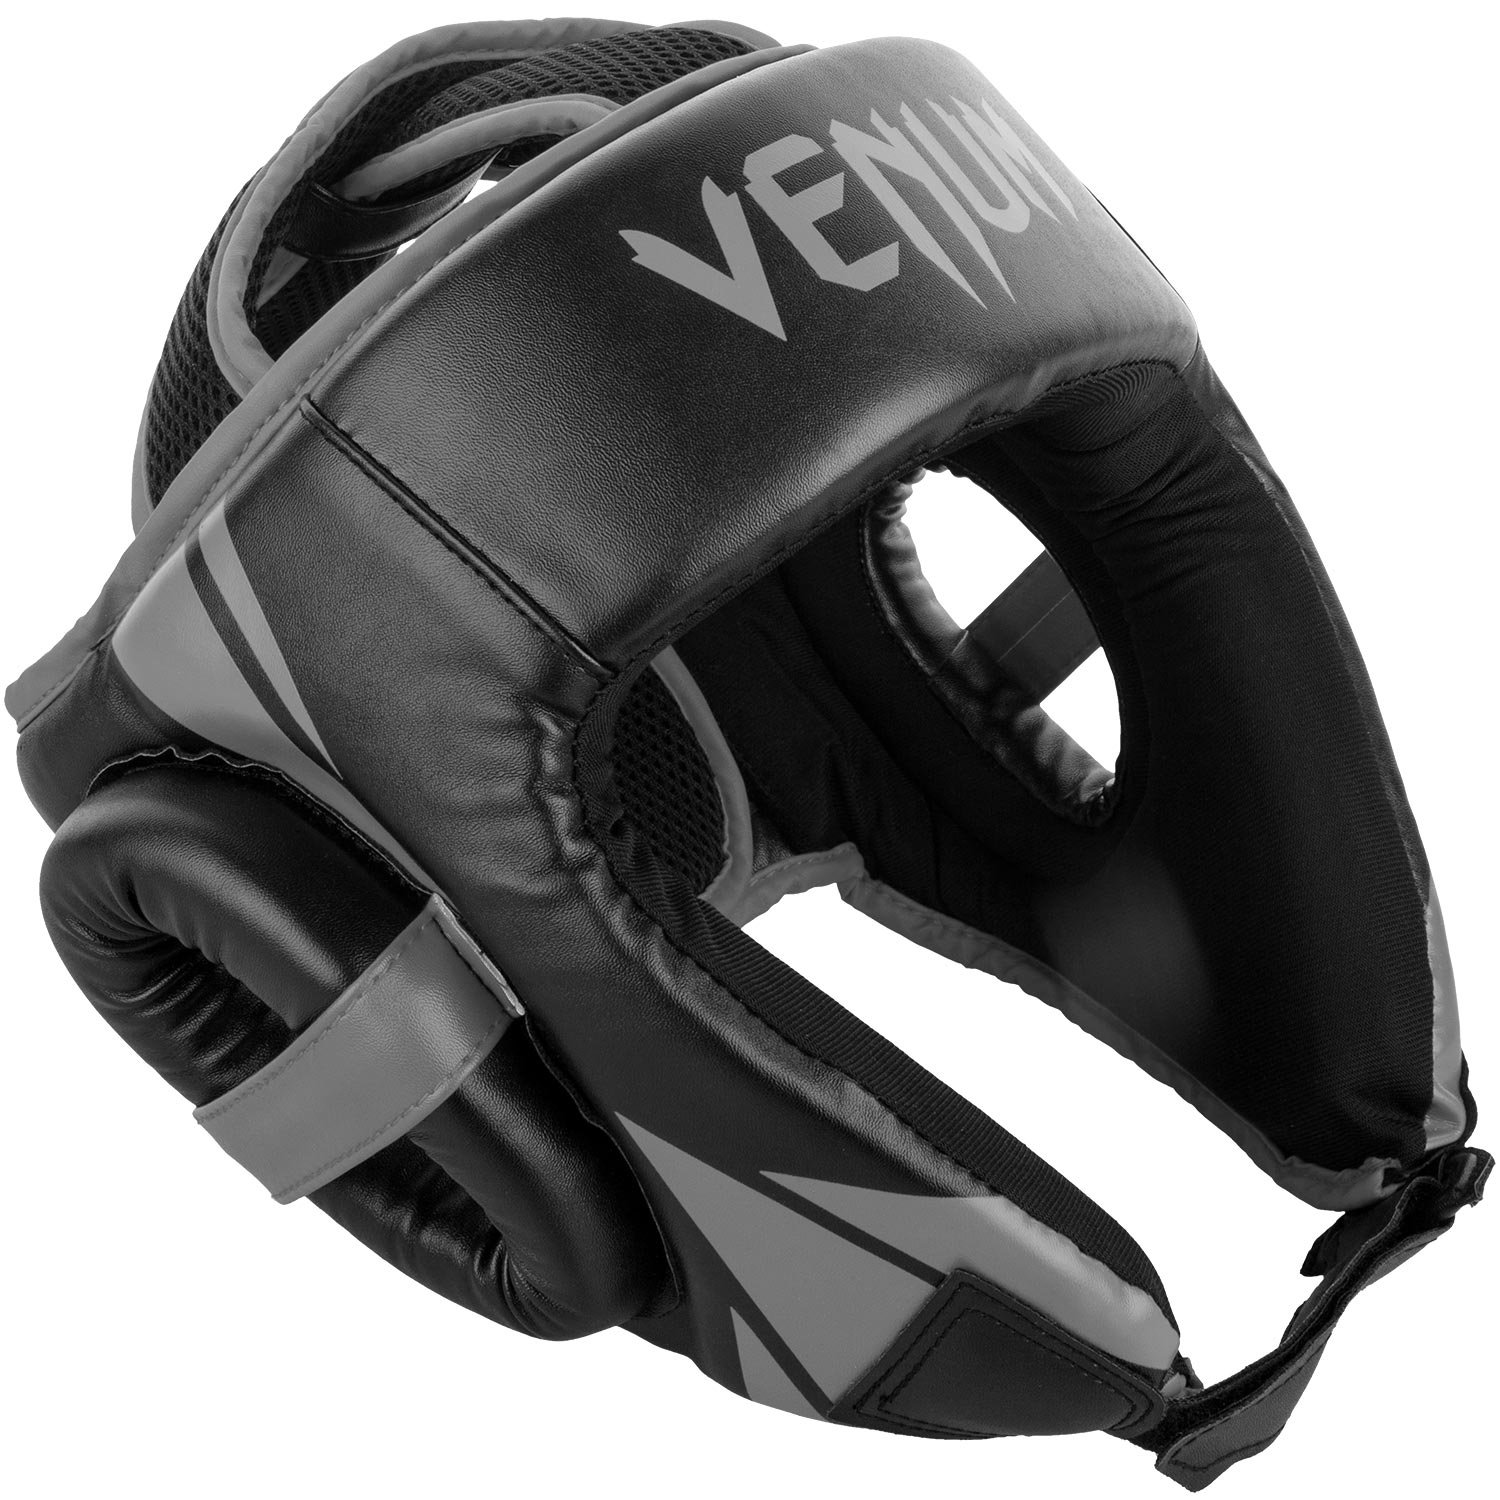 Venum Challenger Open Face Headgear – ブラック/グレー、1サイズ B074WHQGXJ